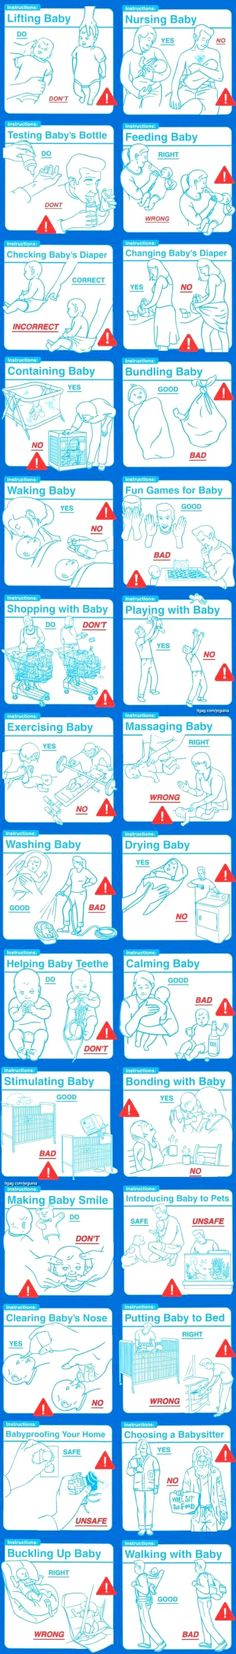 Instruction manual for first time parents.